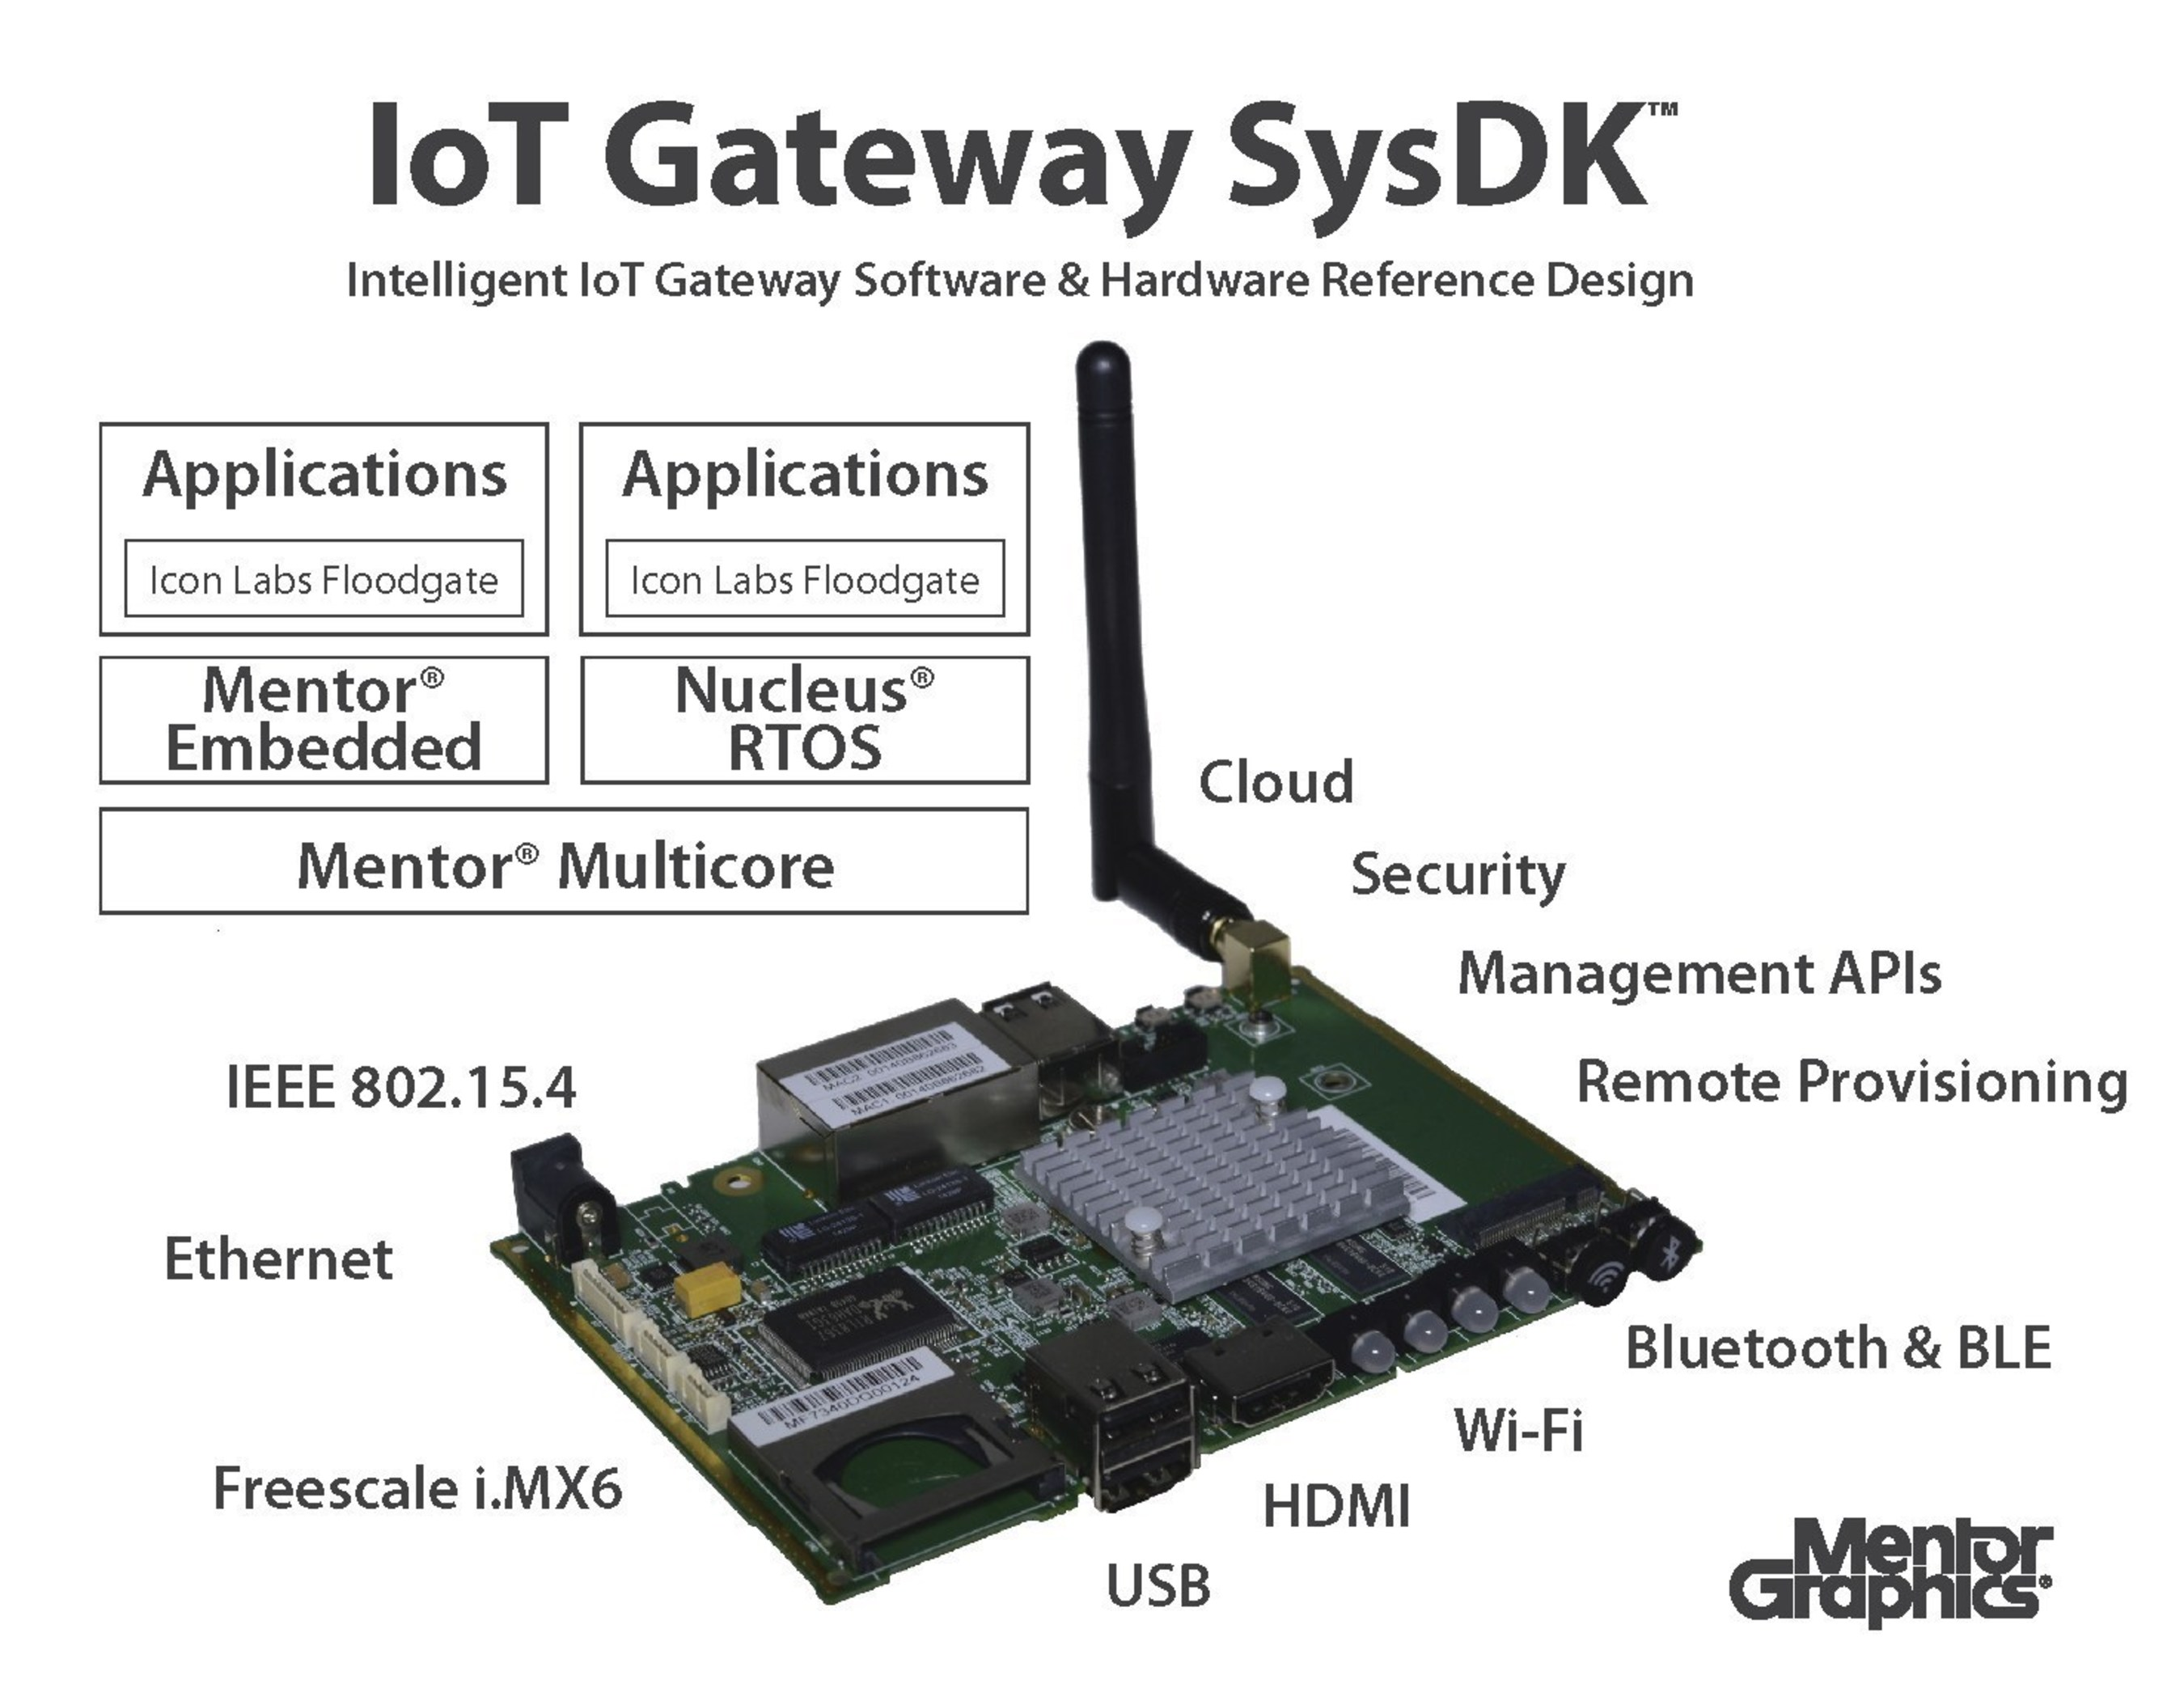 Mentor Graphics Announces Customizable, Secure End-to-End IoT Solution with Integrated Gateway, Cloud and Edge Devices